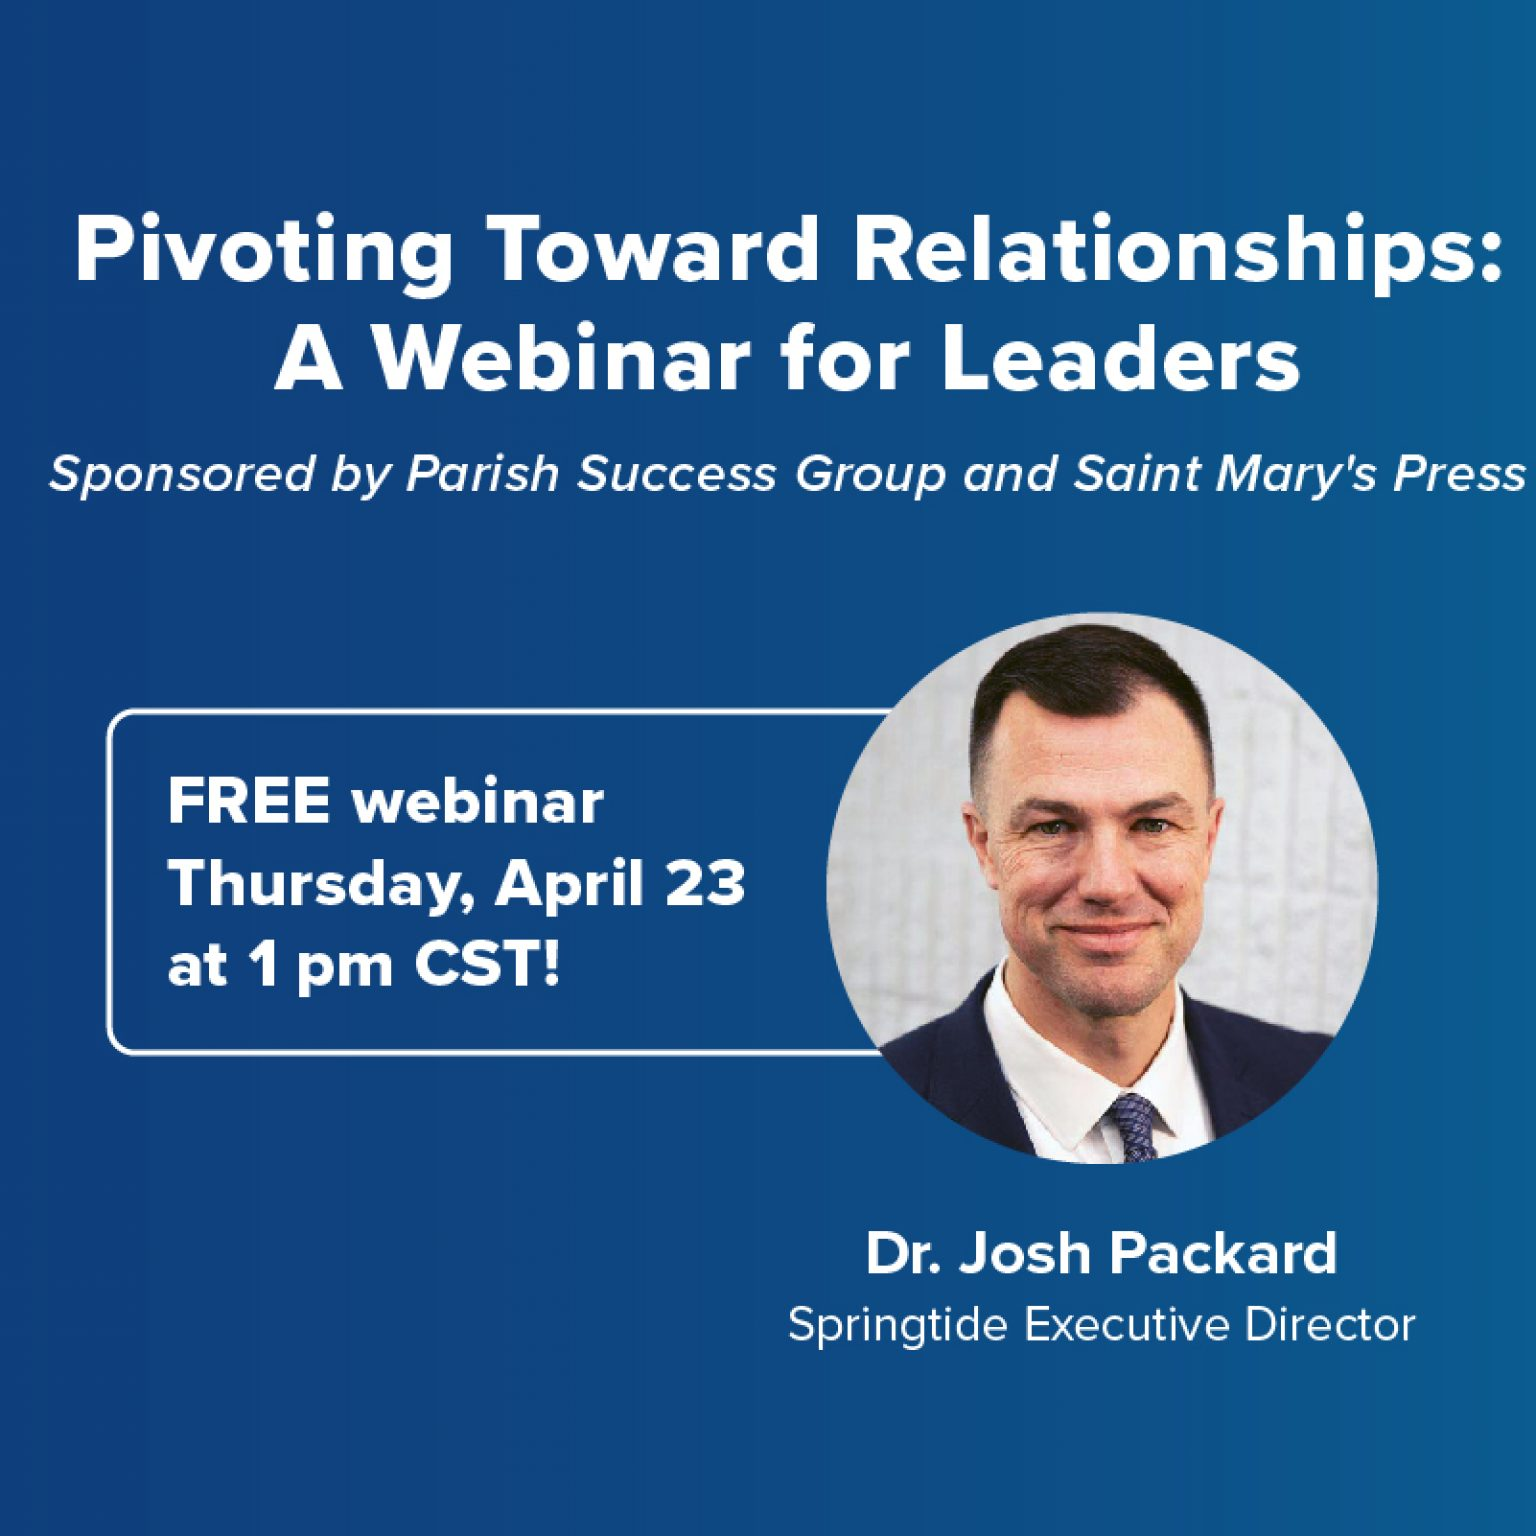 Pivoting Toward Relationships: A Webinar for Leaders